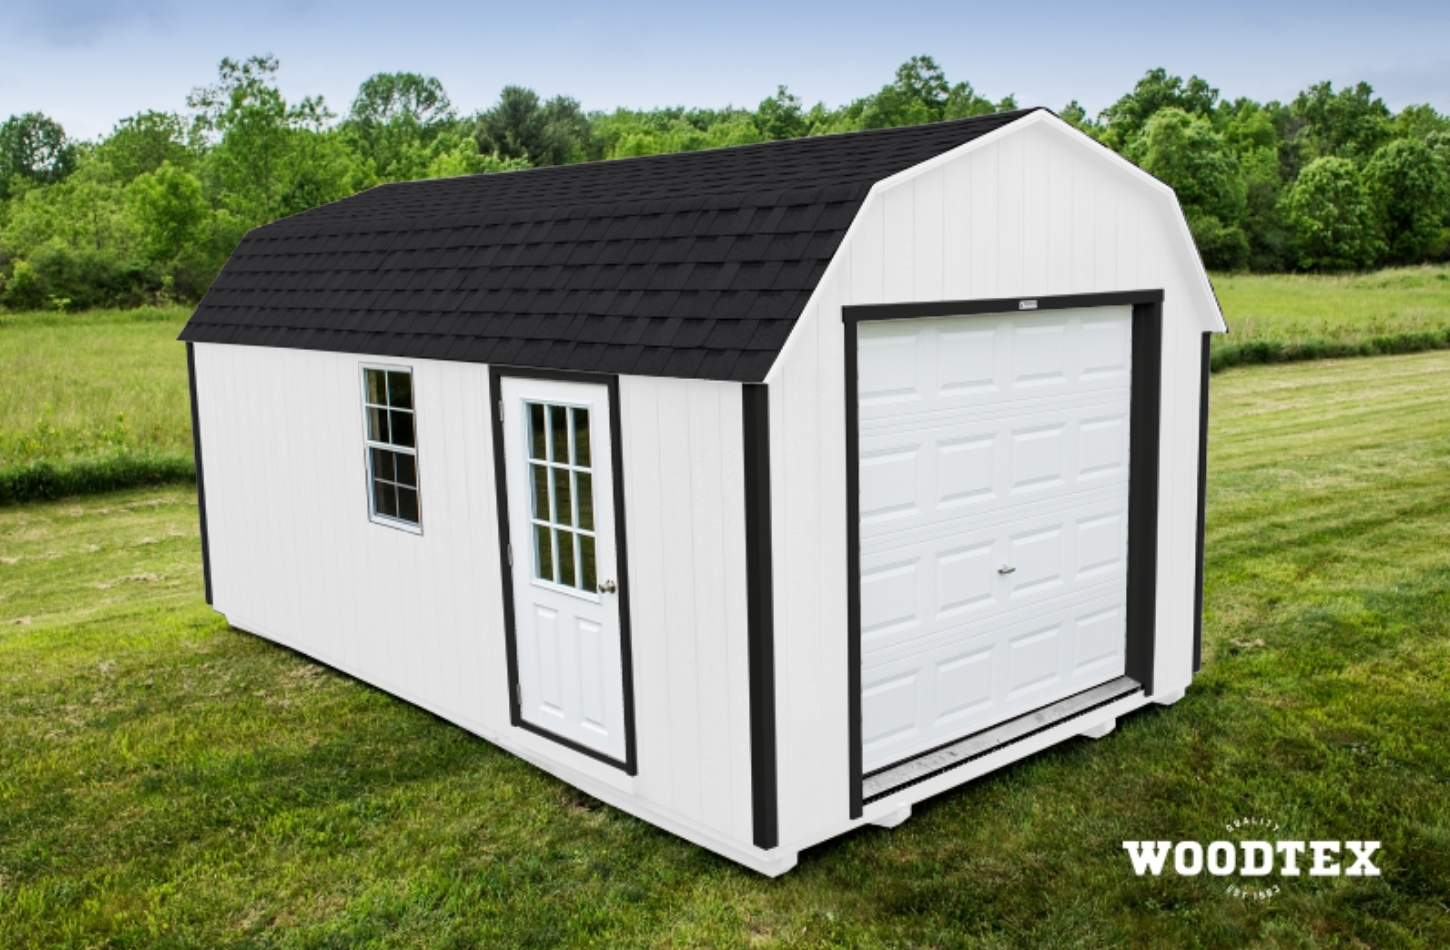 premium pole building door storage shed x photo garage pm for gambrel and features apr it sheds an